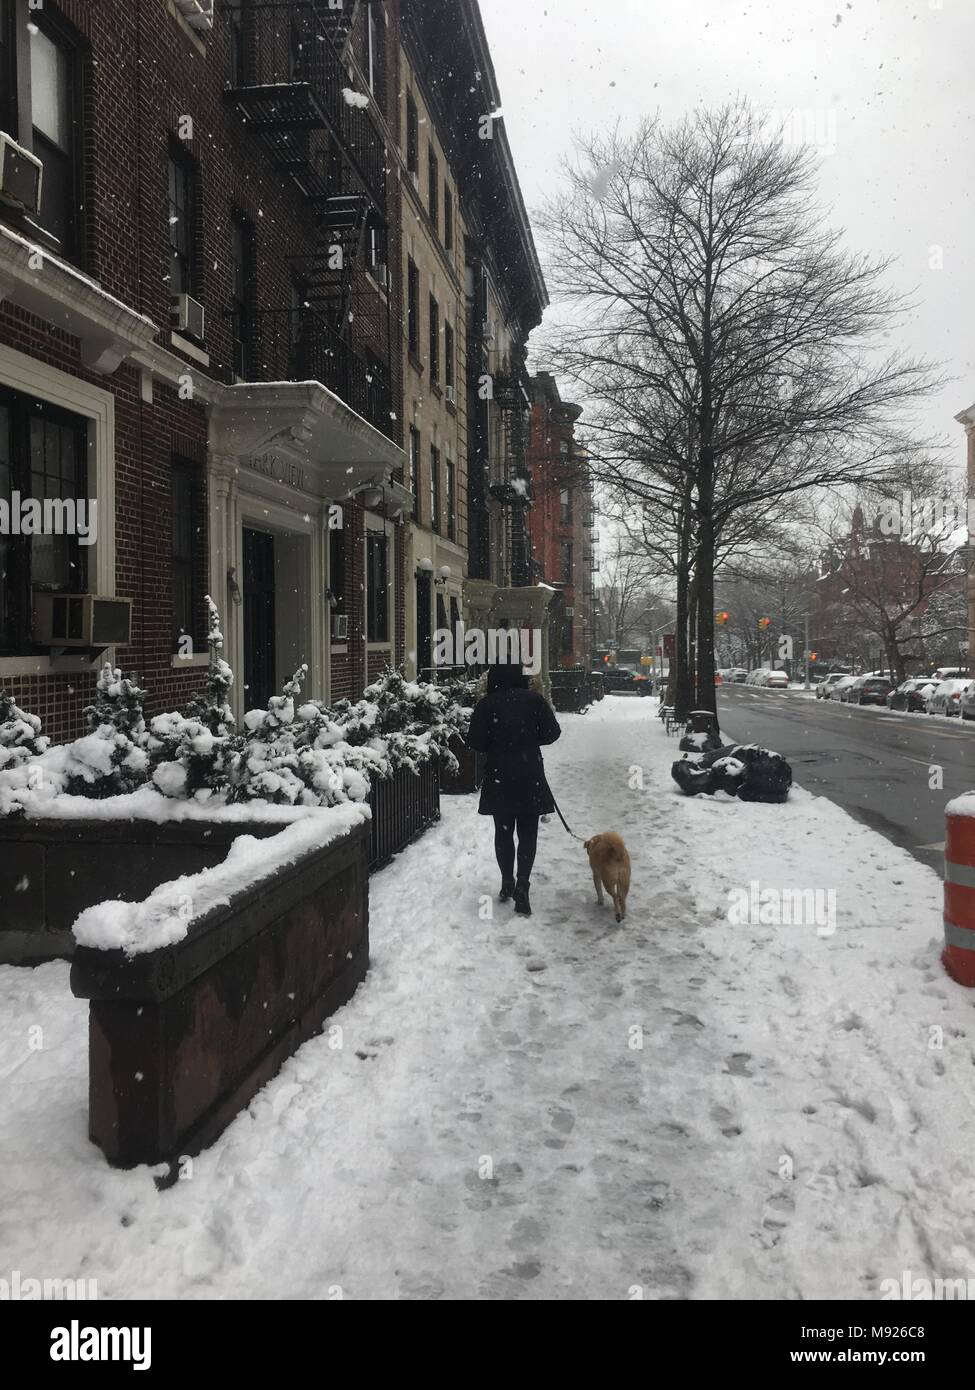 Brooklyn, USA. 21st March, 2018. Woman walking her dog in Brooklyn, NY during the Spring Nor'easter, March 21st, 2018. Credit: OneDayOneImage/Alamy Live News - Stock Image